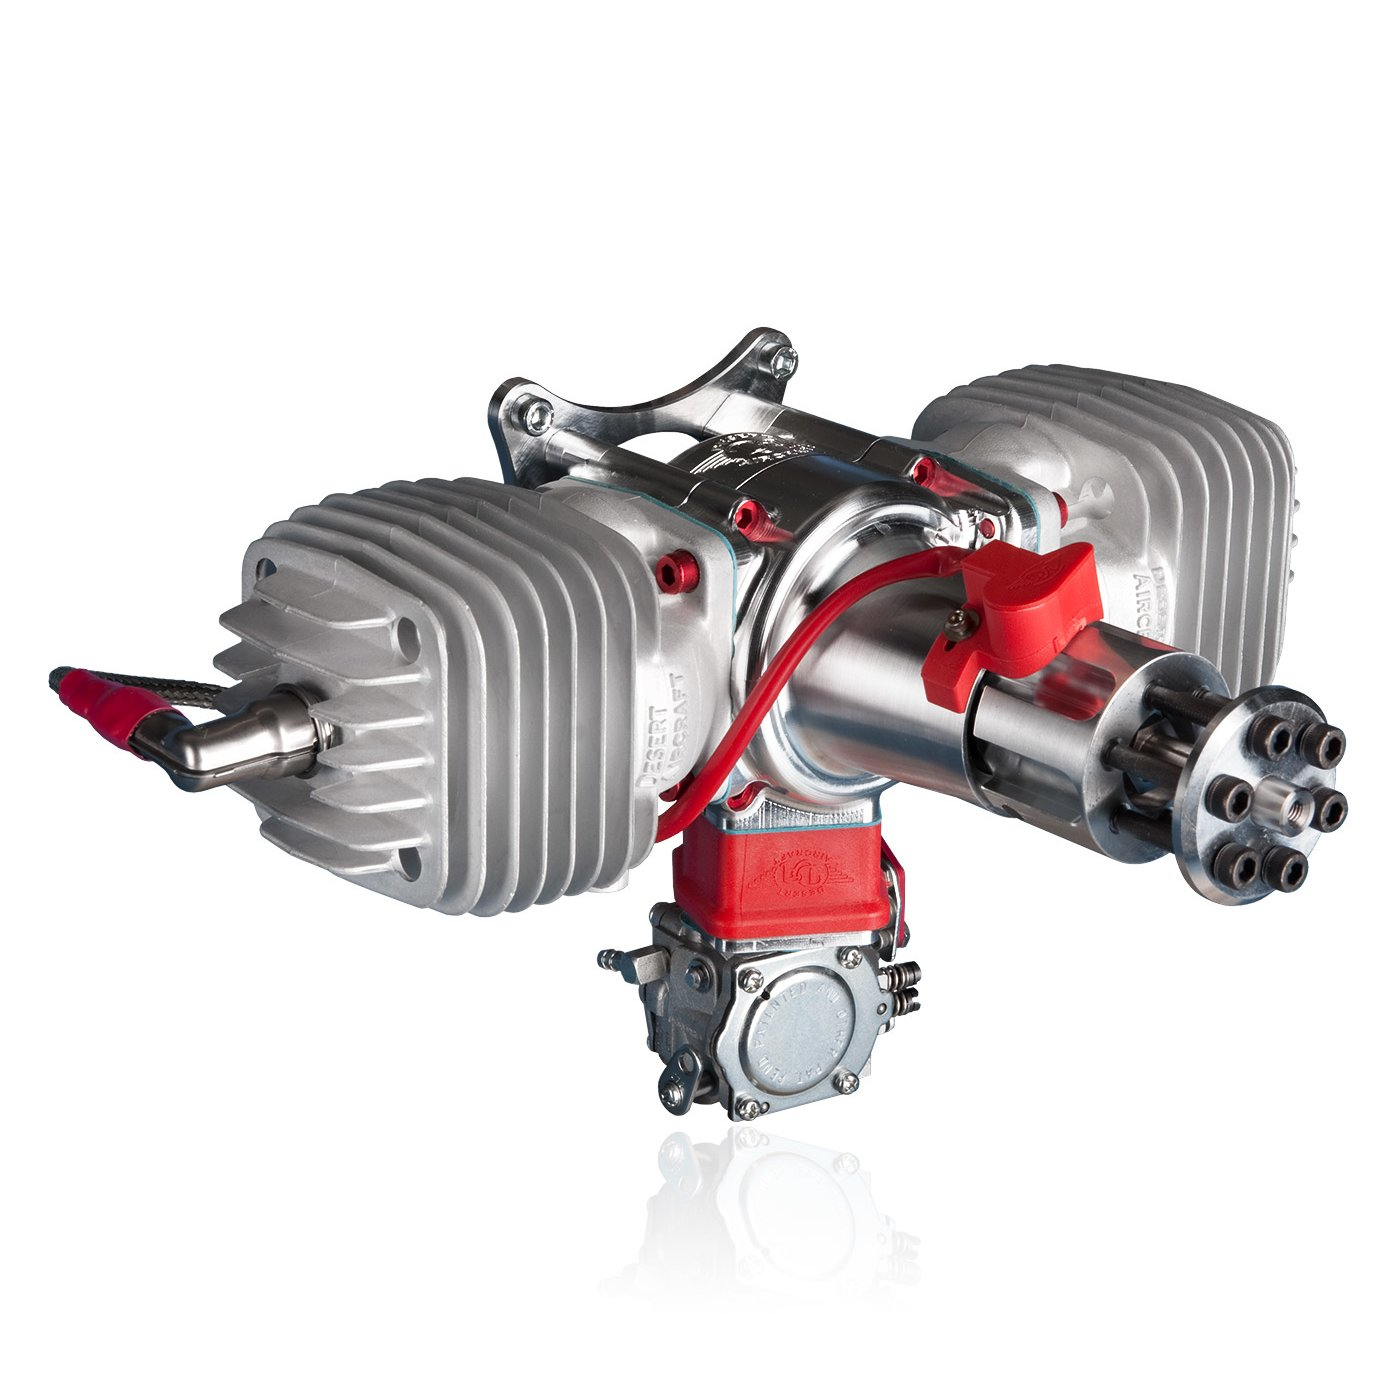 Desert Aircraft 120cc Twin Petrol Engine - DA-120